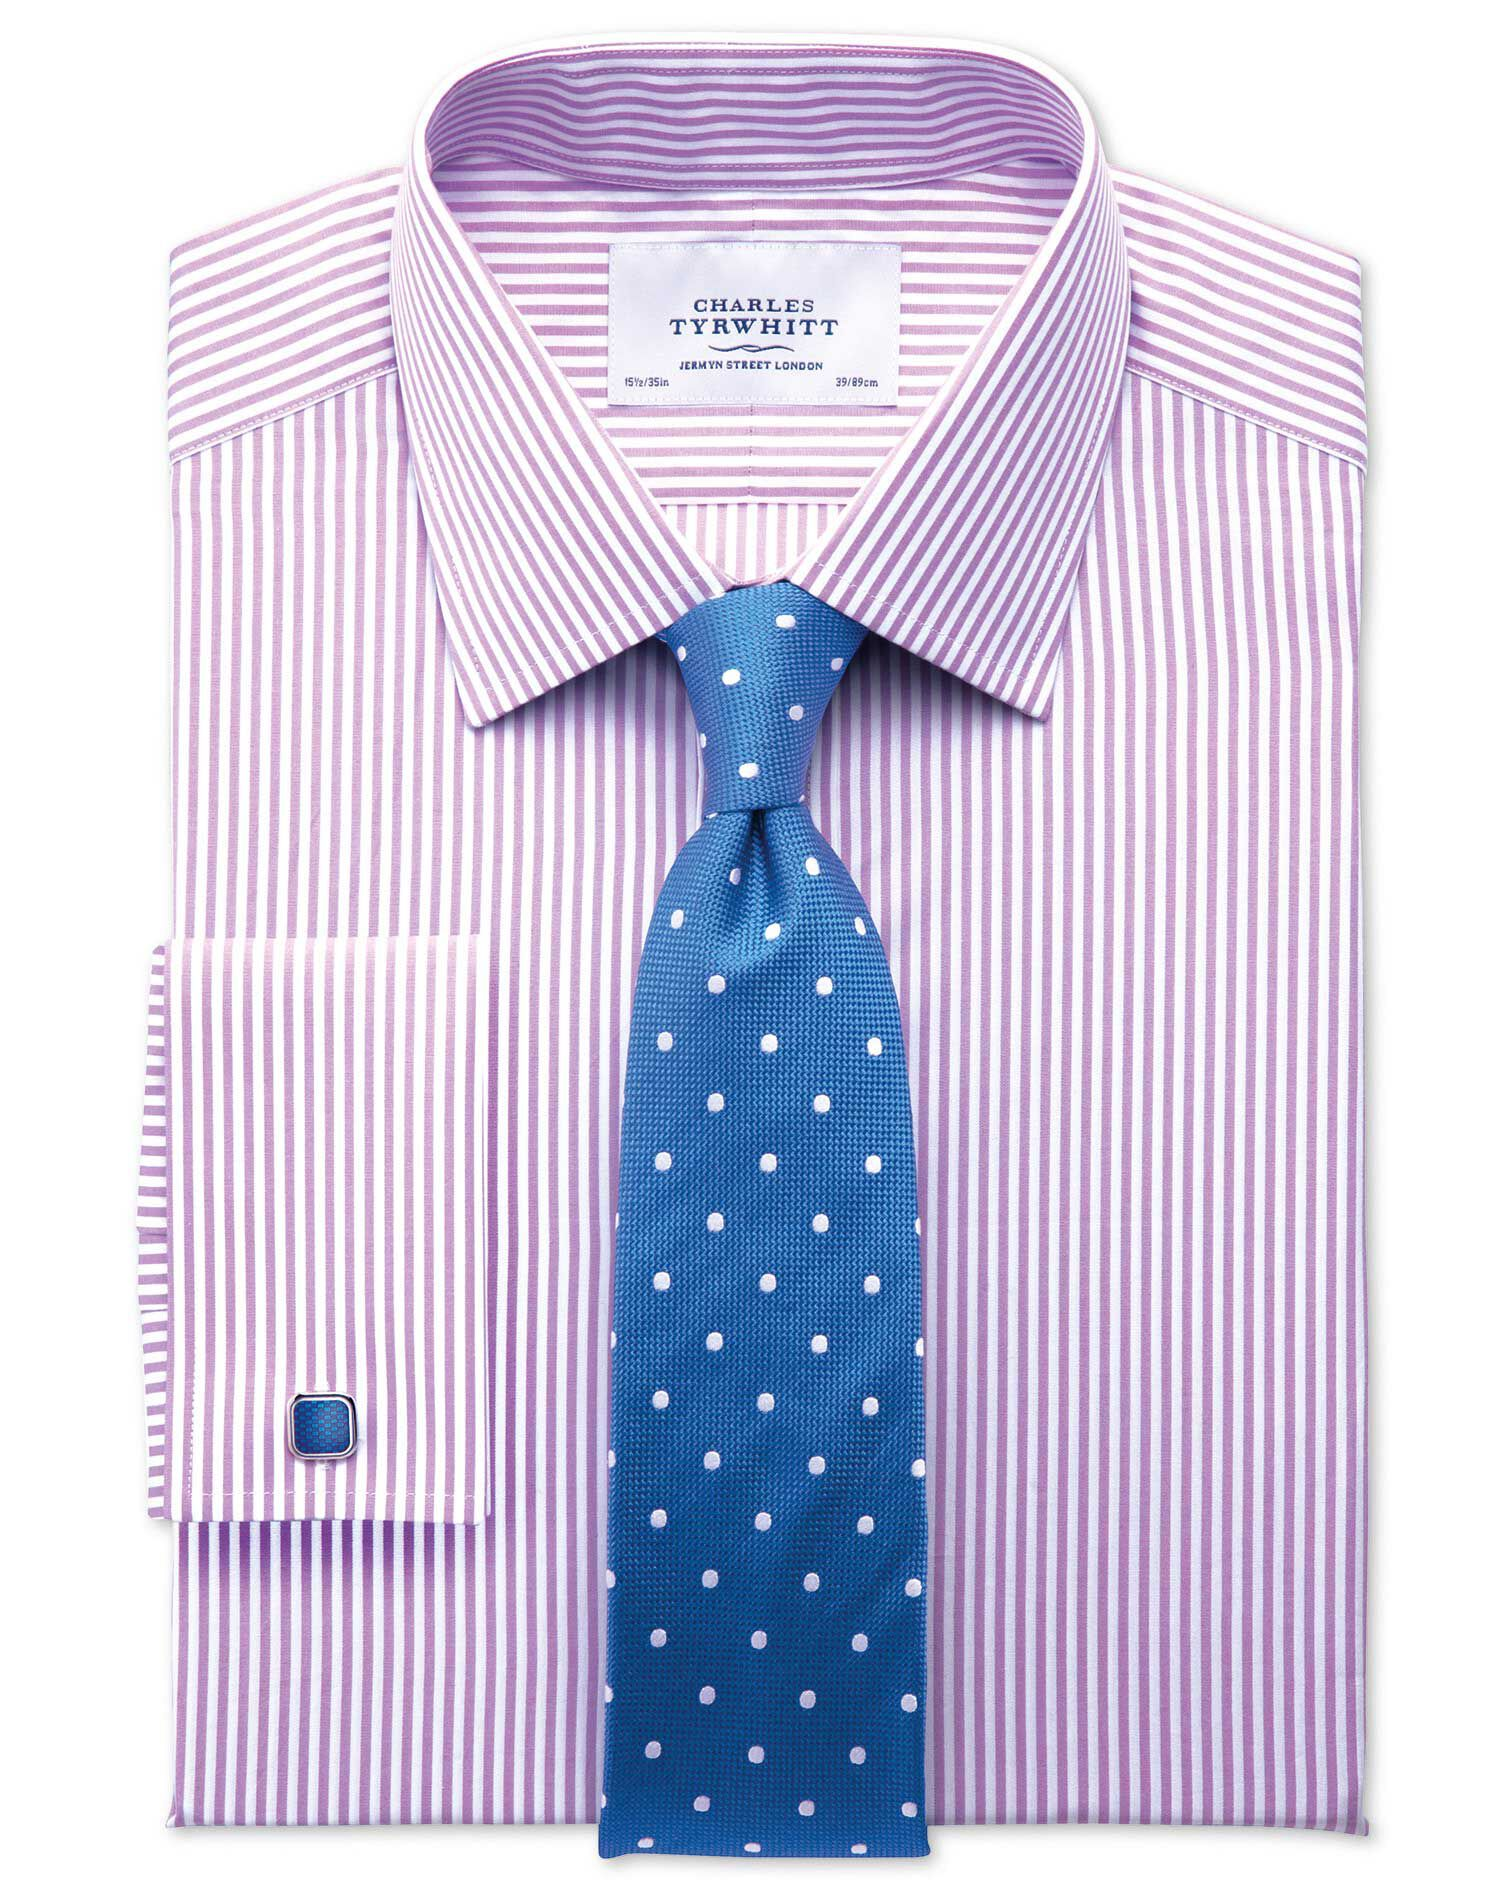 Classic Fit Bengal Stripe Lilac Cotton Formal Shirt Single Cuff Size 16/36 by Charles Tyrwhitt